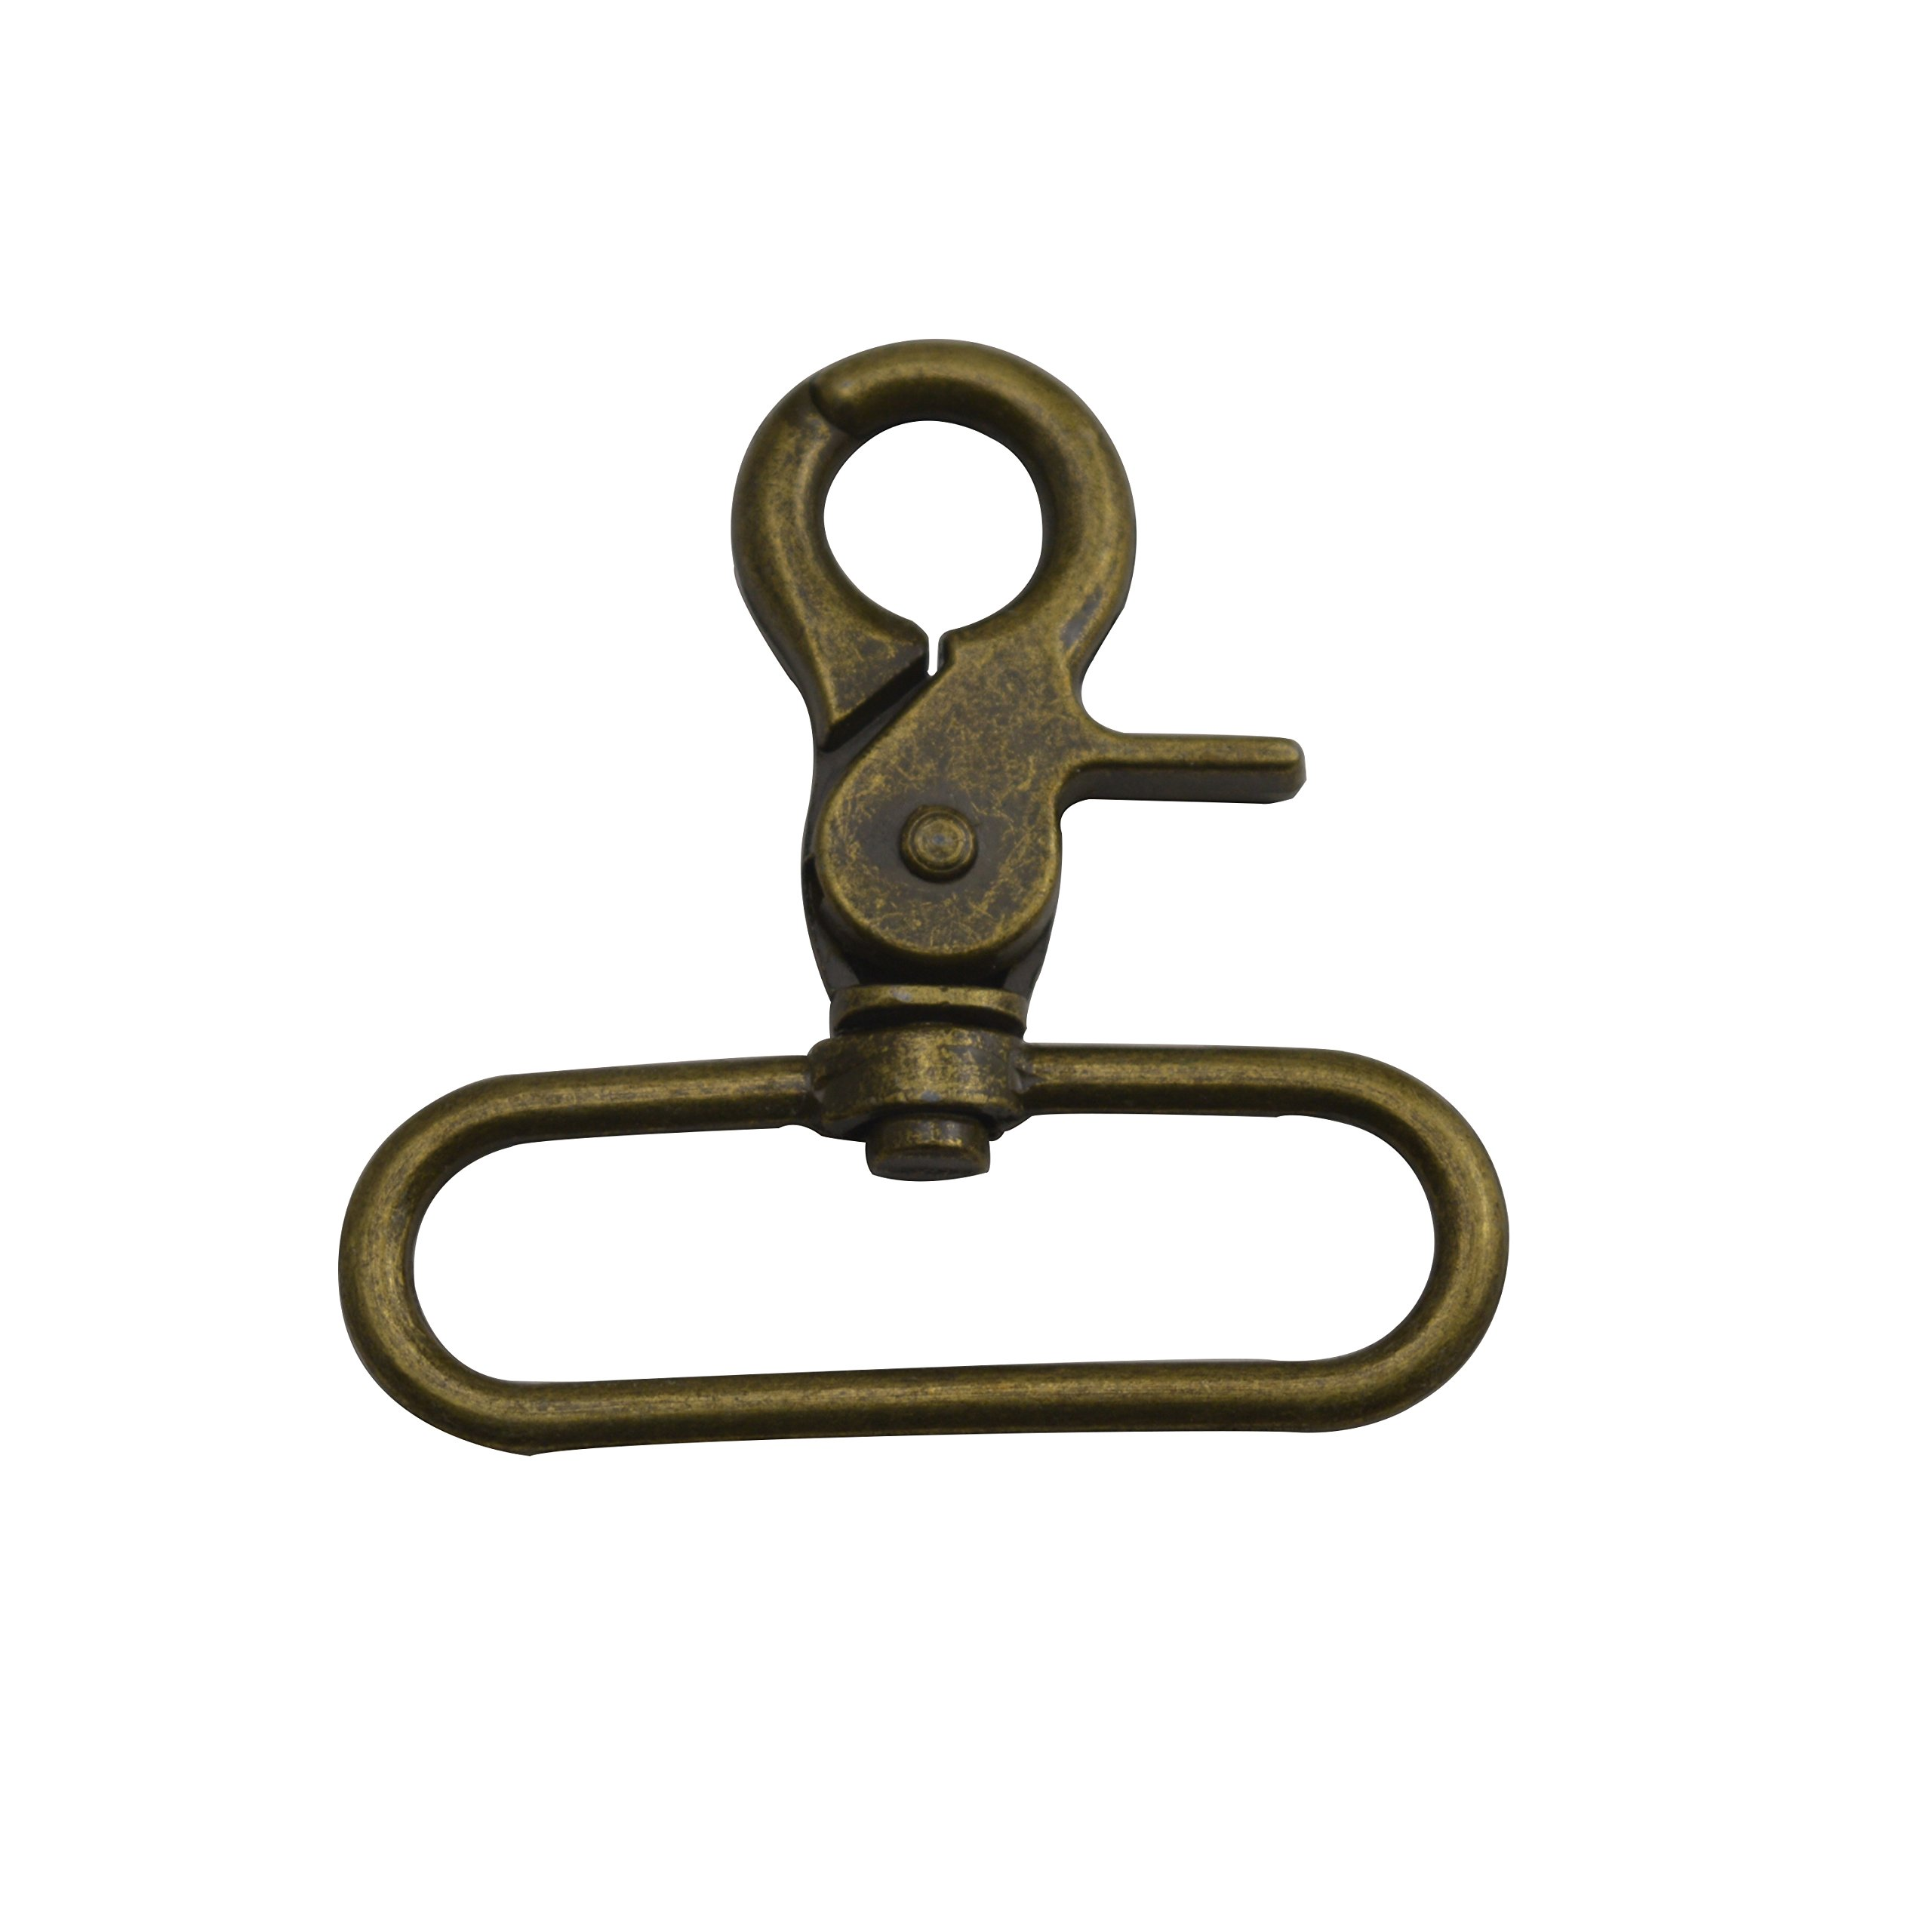 Wuuycoky Bronze 2'' Inner Diameter Oval Ring Pliers Buckle Lobster Clasps Swivel Snap Hooks Pack of 10